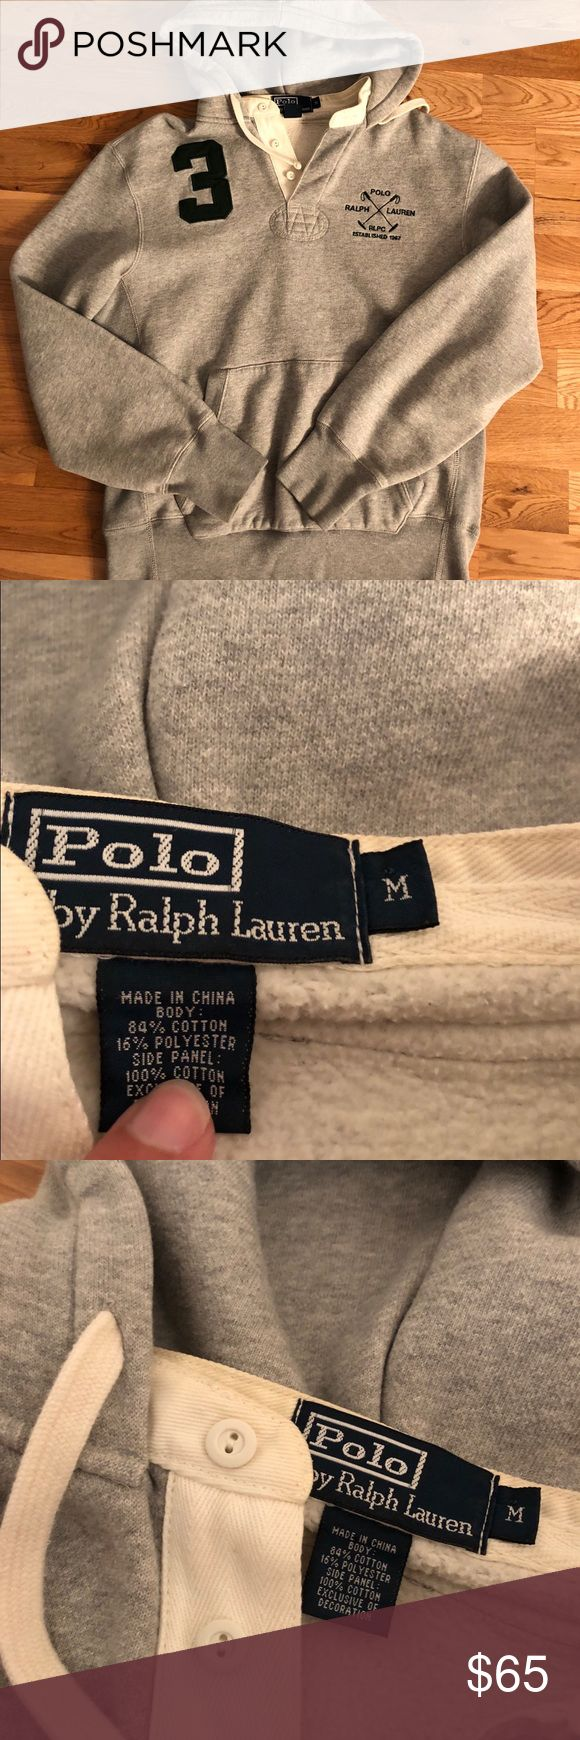 Polo Ralph Lauren Rugby Polo Hoodie Polo Ralph Lauren Rugby Hoodie  -Size Medium -A very rare hoodie, extremely hard to find in size Medium -#3 embroidery on the front, as well as the classic Polo embroidery  -Heather gray colorway  -Heavyweight material, very comfortable; Fleece on the inside  -In great shape, only flaw is some minor yellowing of the collar, barely noticeable at all  -Own a rare polo piece today  -Tap in Polo by Ralph Lauren Jackets & Coats